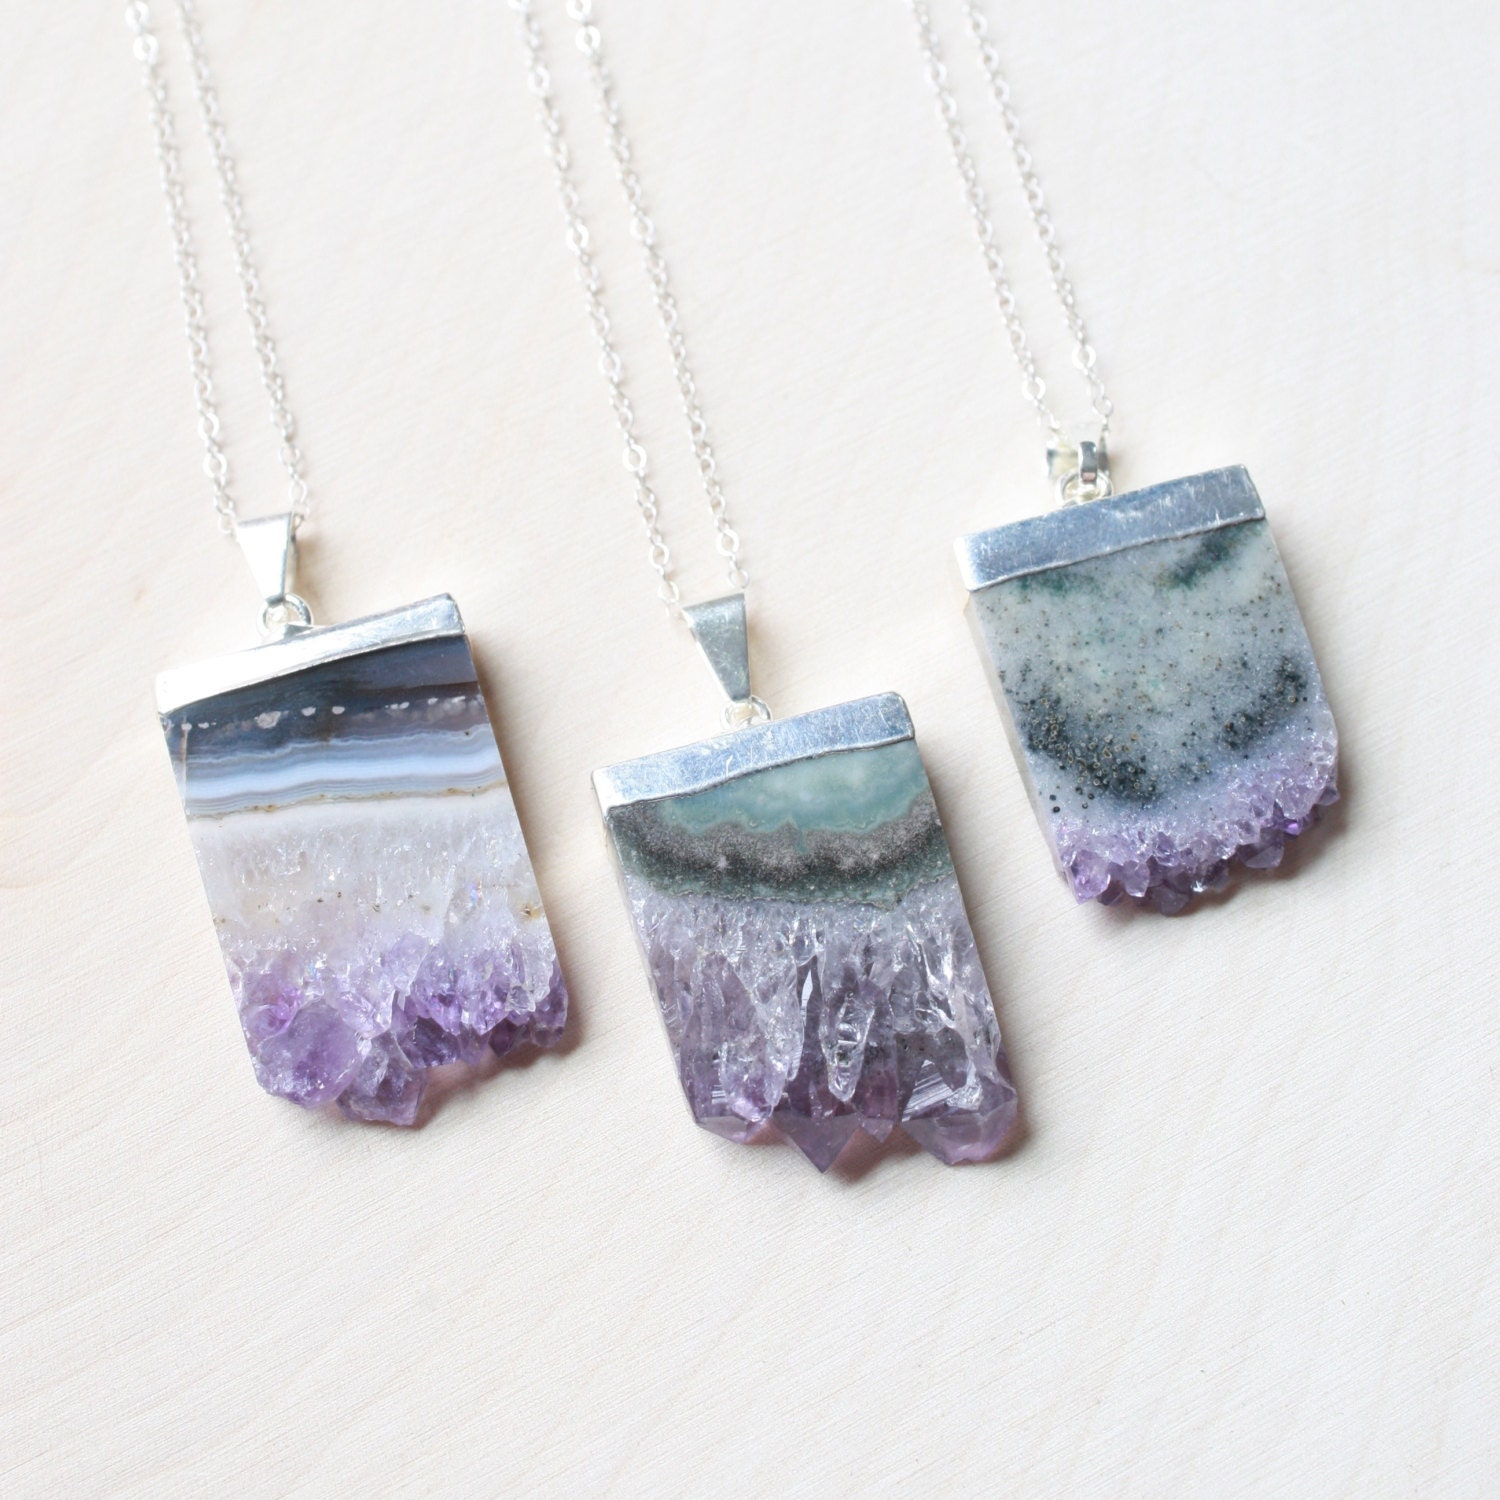 amethyst stone necklace - photo #36